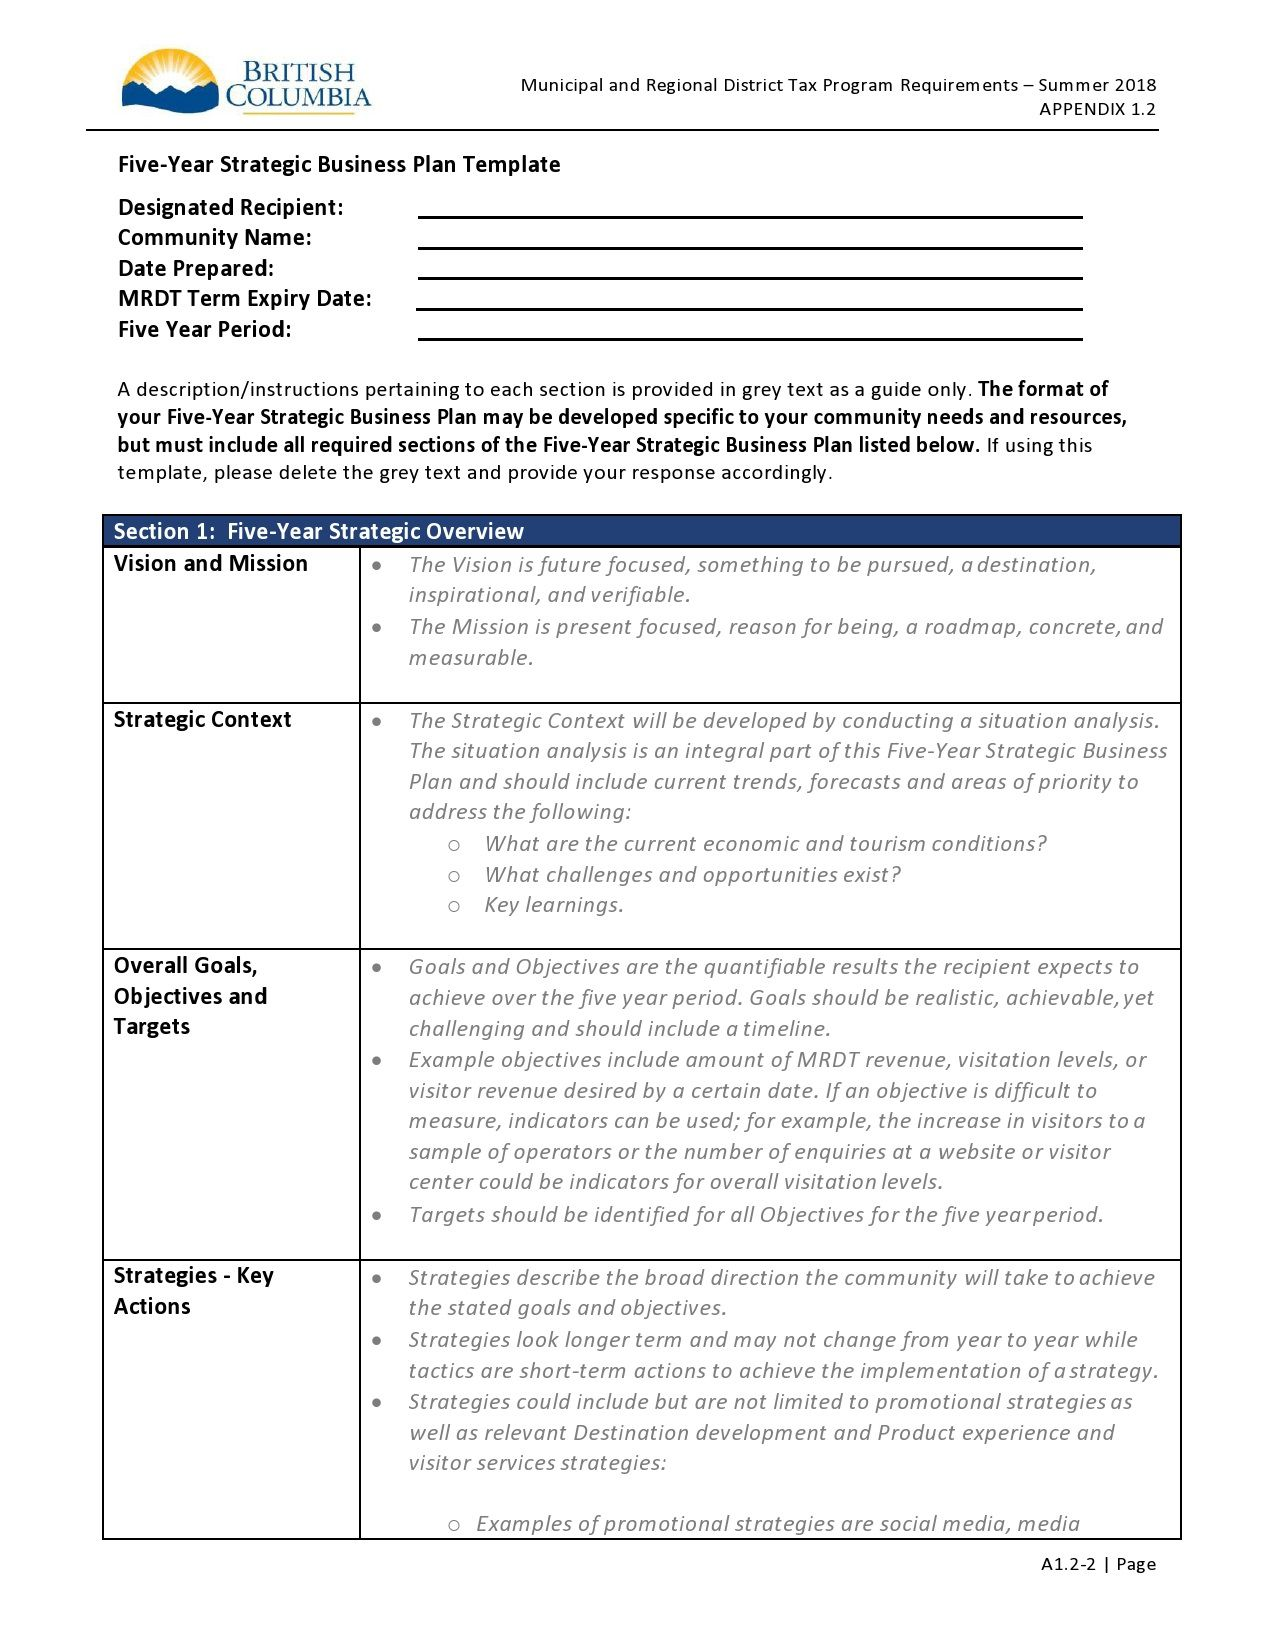 001 Unusual 5 Year Plan Template Image  Pdf Busines For CoupleFull